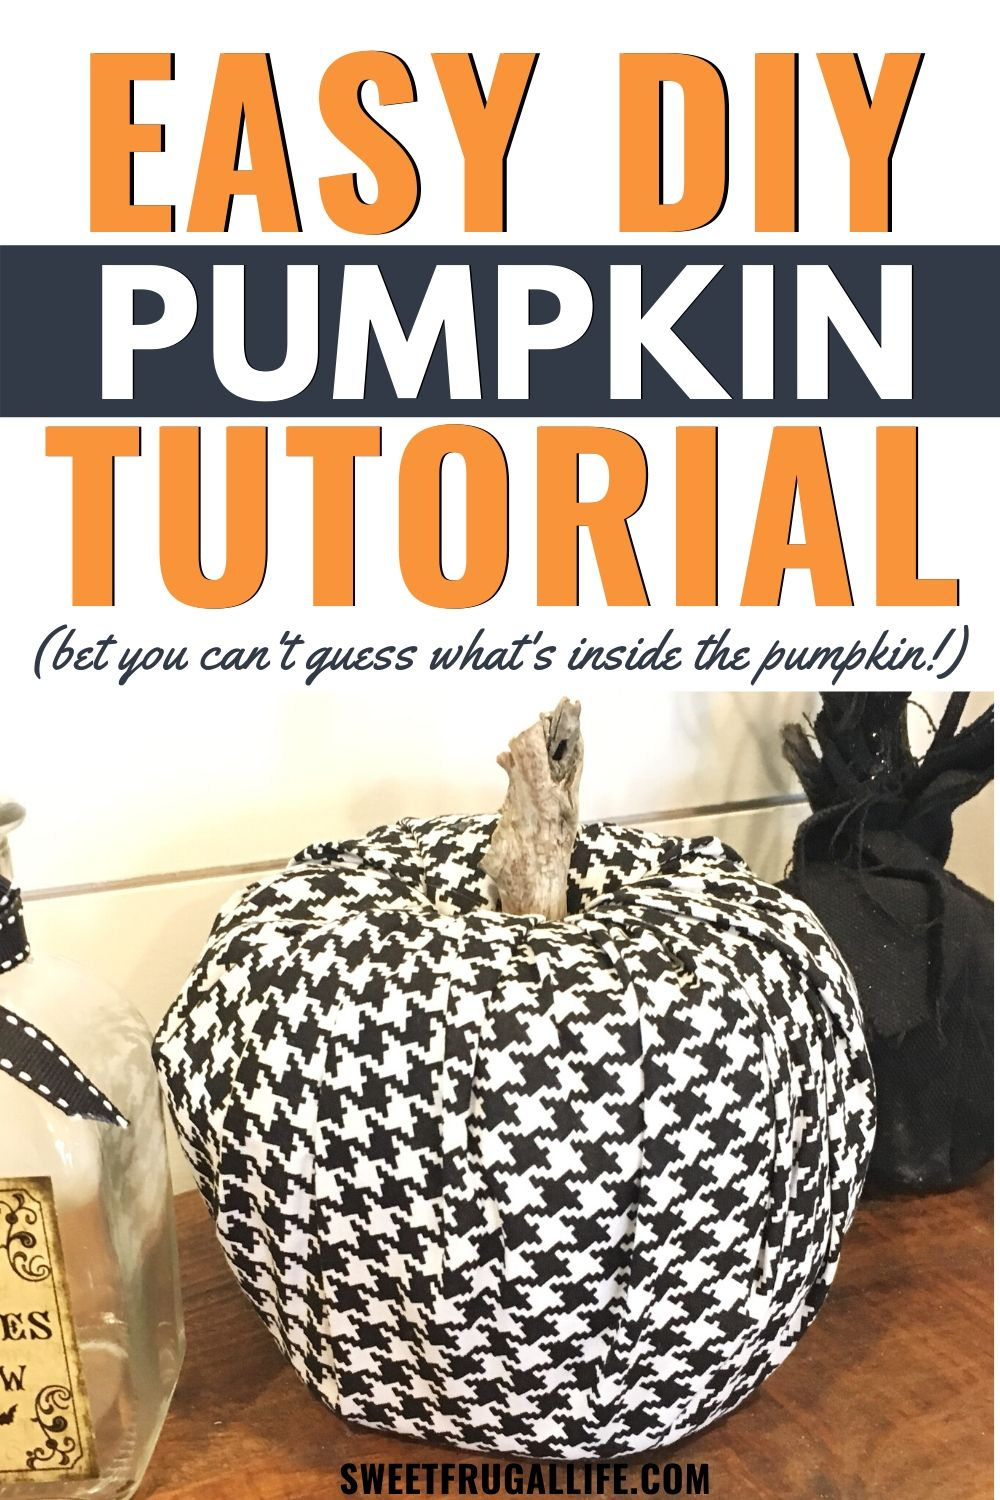 toilet paper pumpkin tutorial - easy fall craft idea